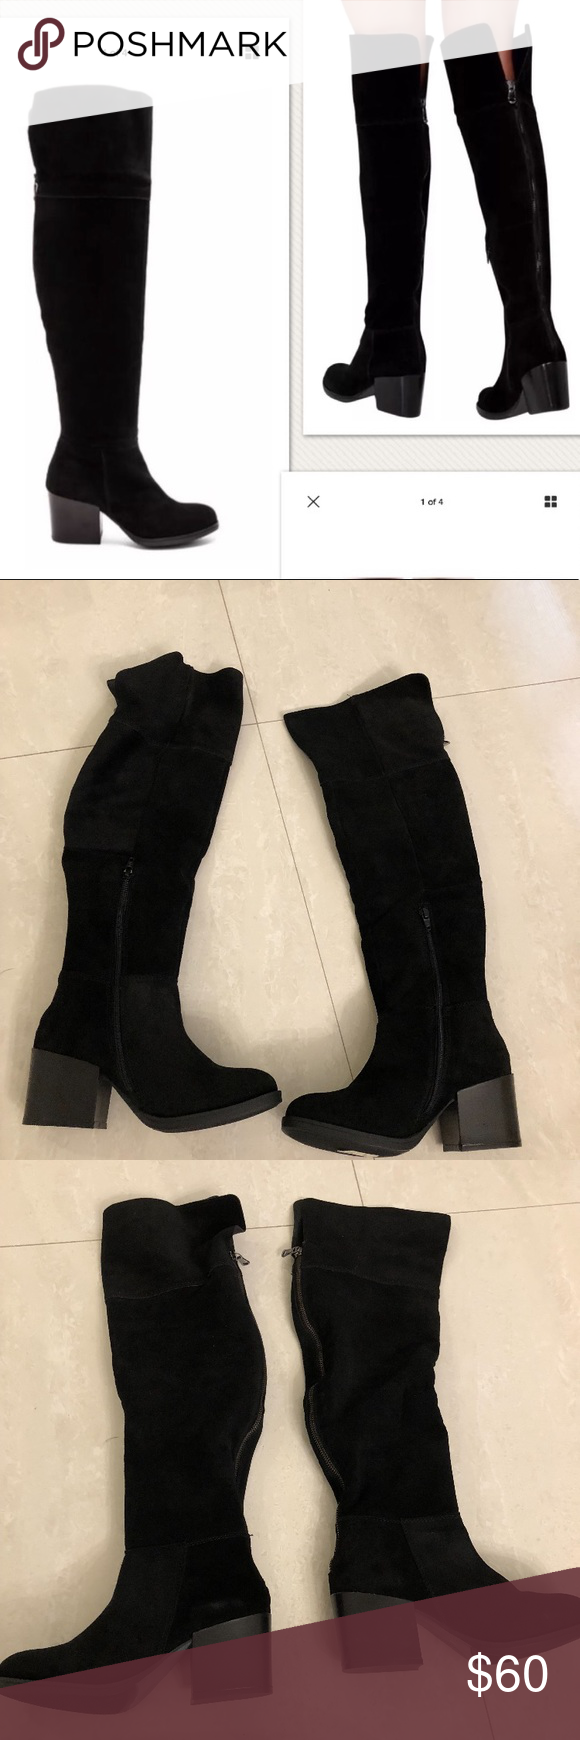 0c3bbe759ec Brand new! Steve Madden boots Size 6 Orabella over the knee boots. Never  worn